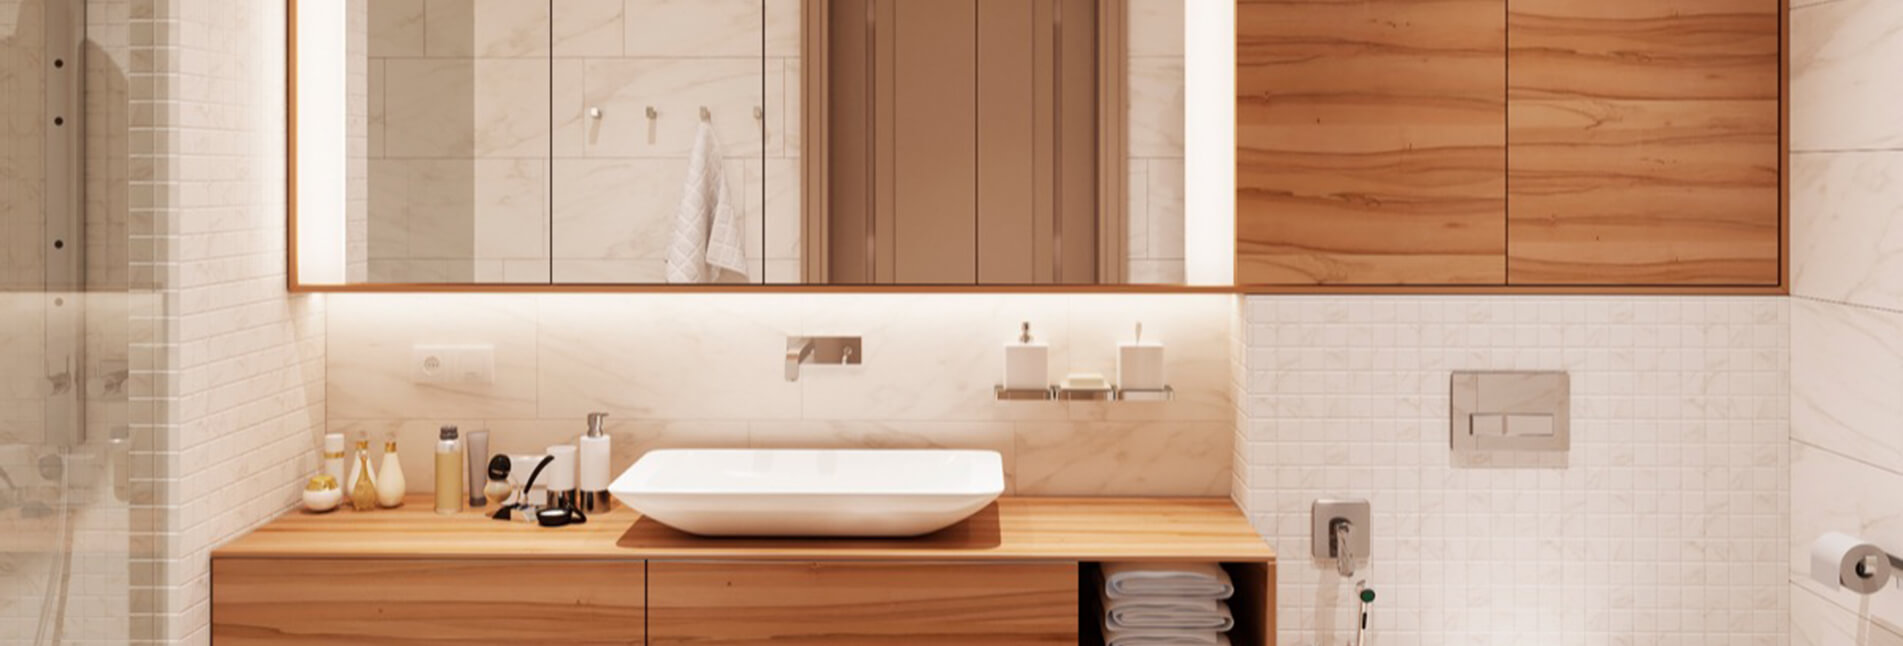 Minimalist-Modern-Bathroom_slider